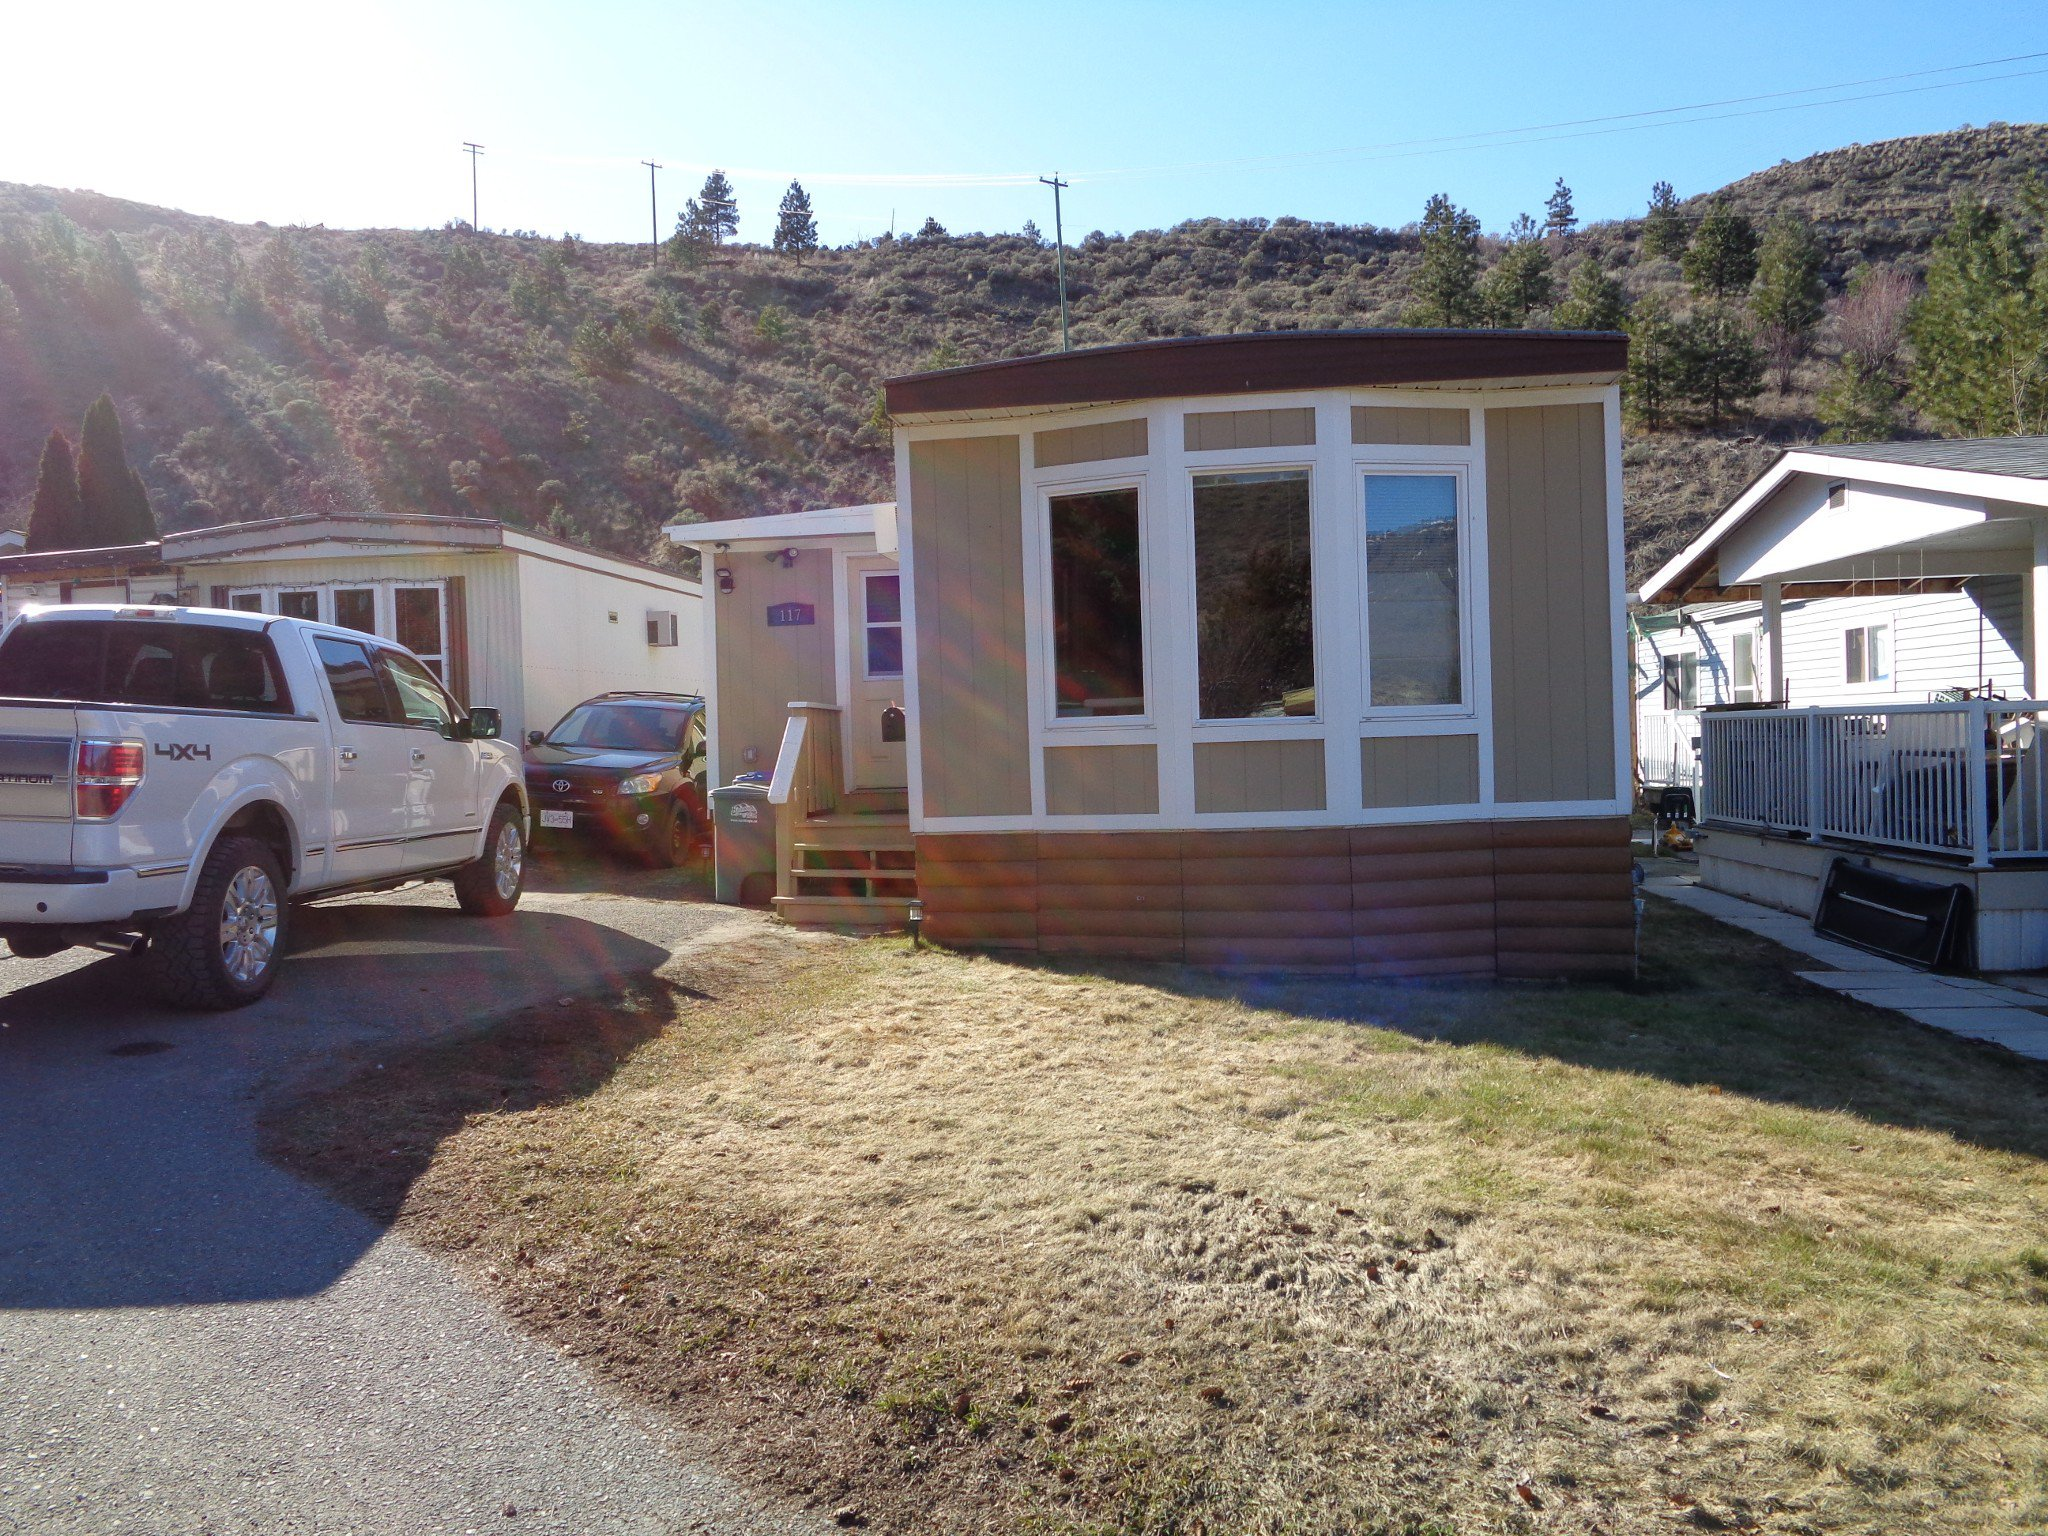 Main Photo: 117-1175 Rose Hill Road in Kamloops: Valleyview Manufactured Home for sale : MLS®# 155642